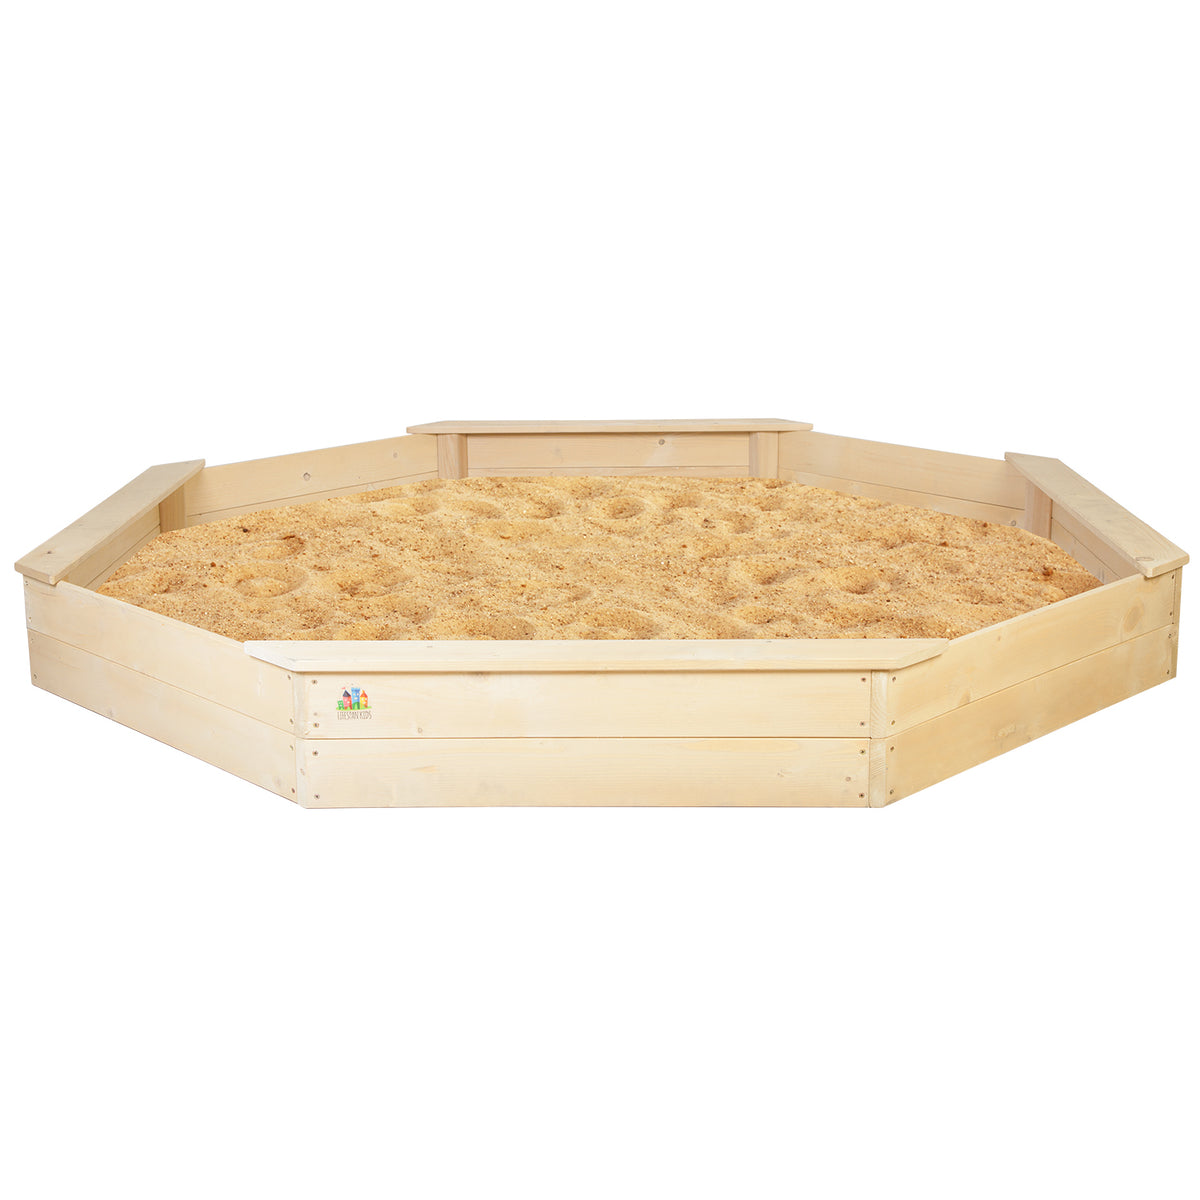 Lifespan Kids Large Octagonal Sandpit